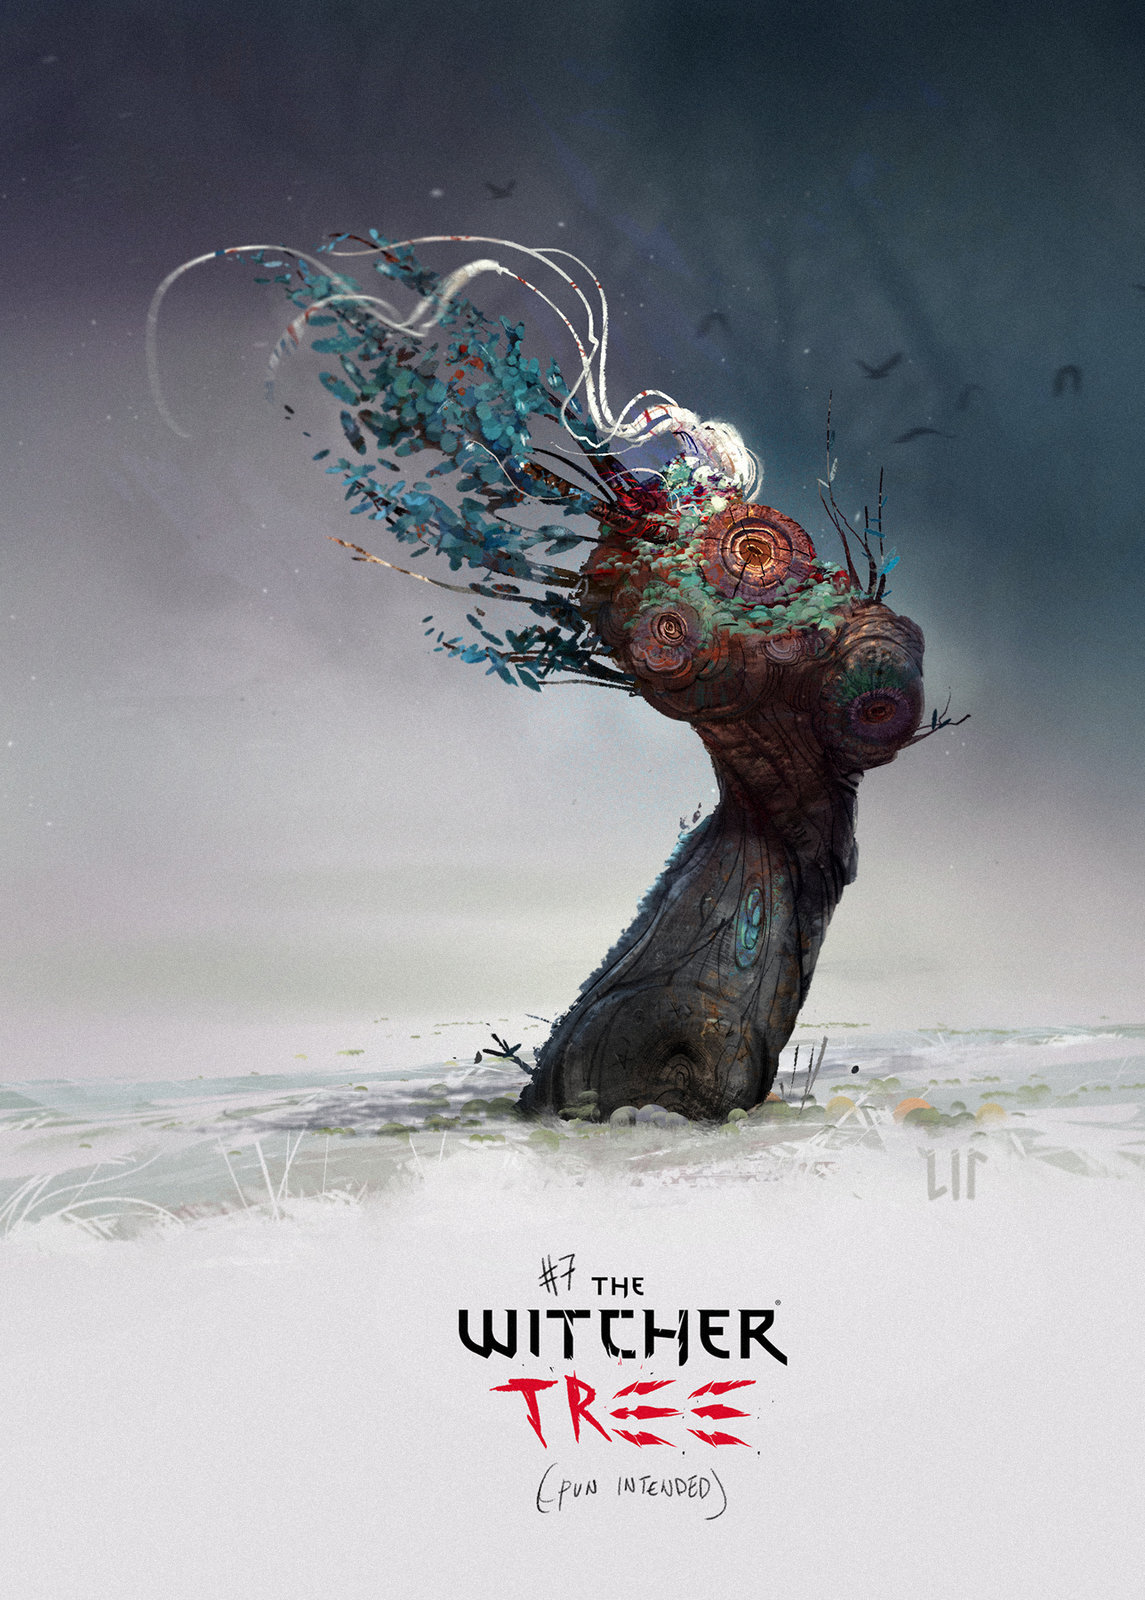 Gerald form the Witcher as a tree design